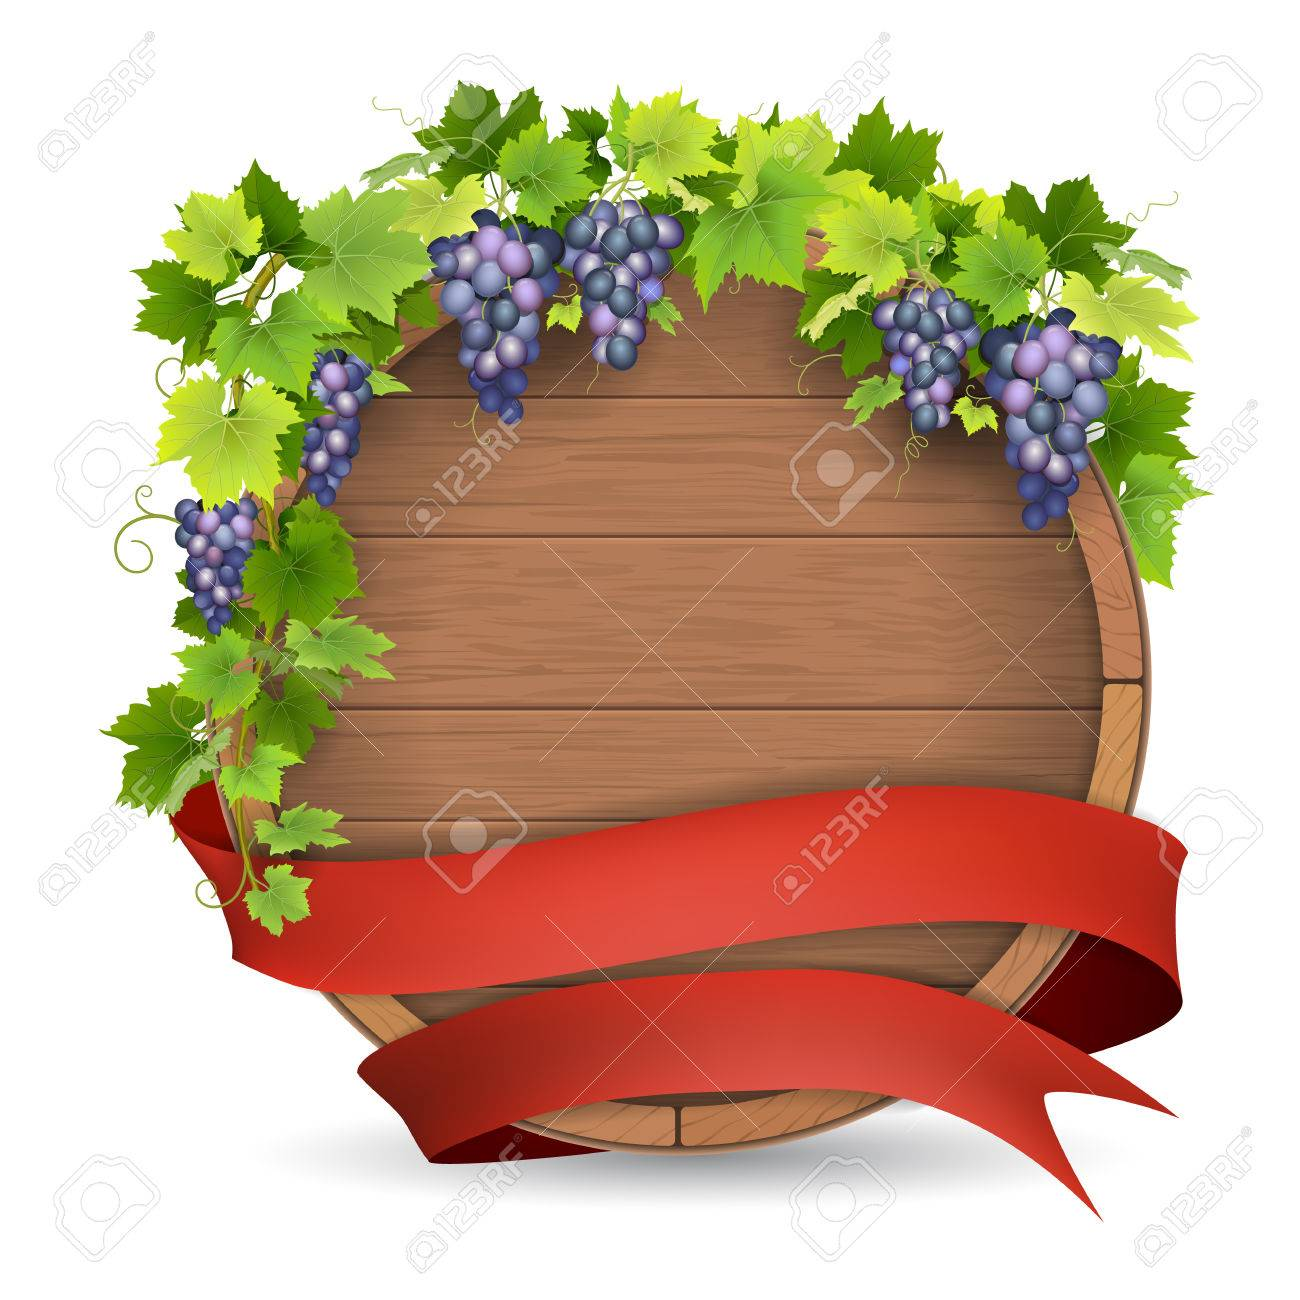 Wooden Barrel For Wine, Grapes Vine And Red Ribbon. Winemaking ...